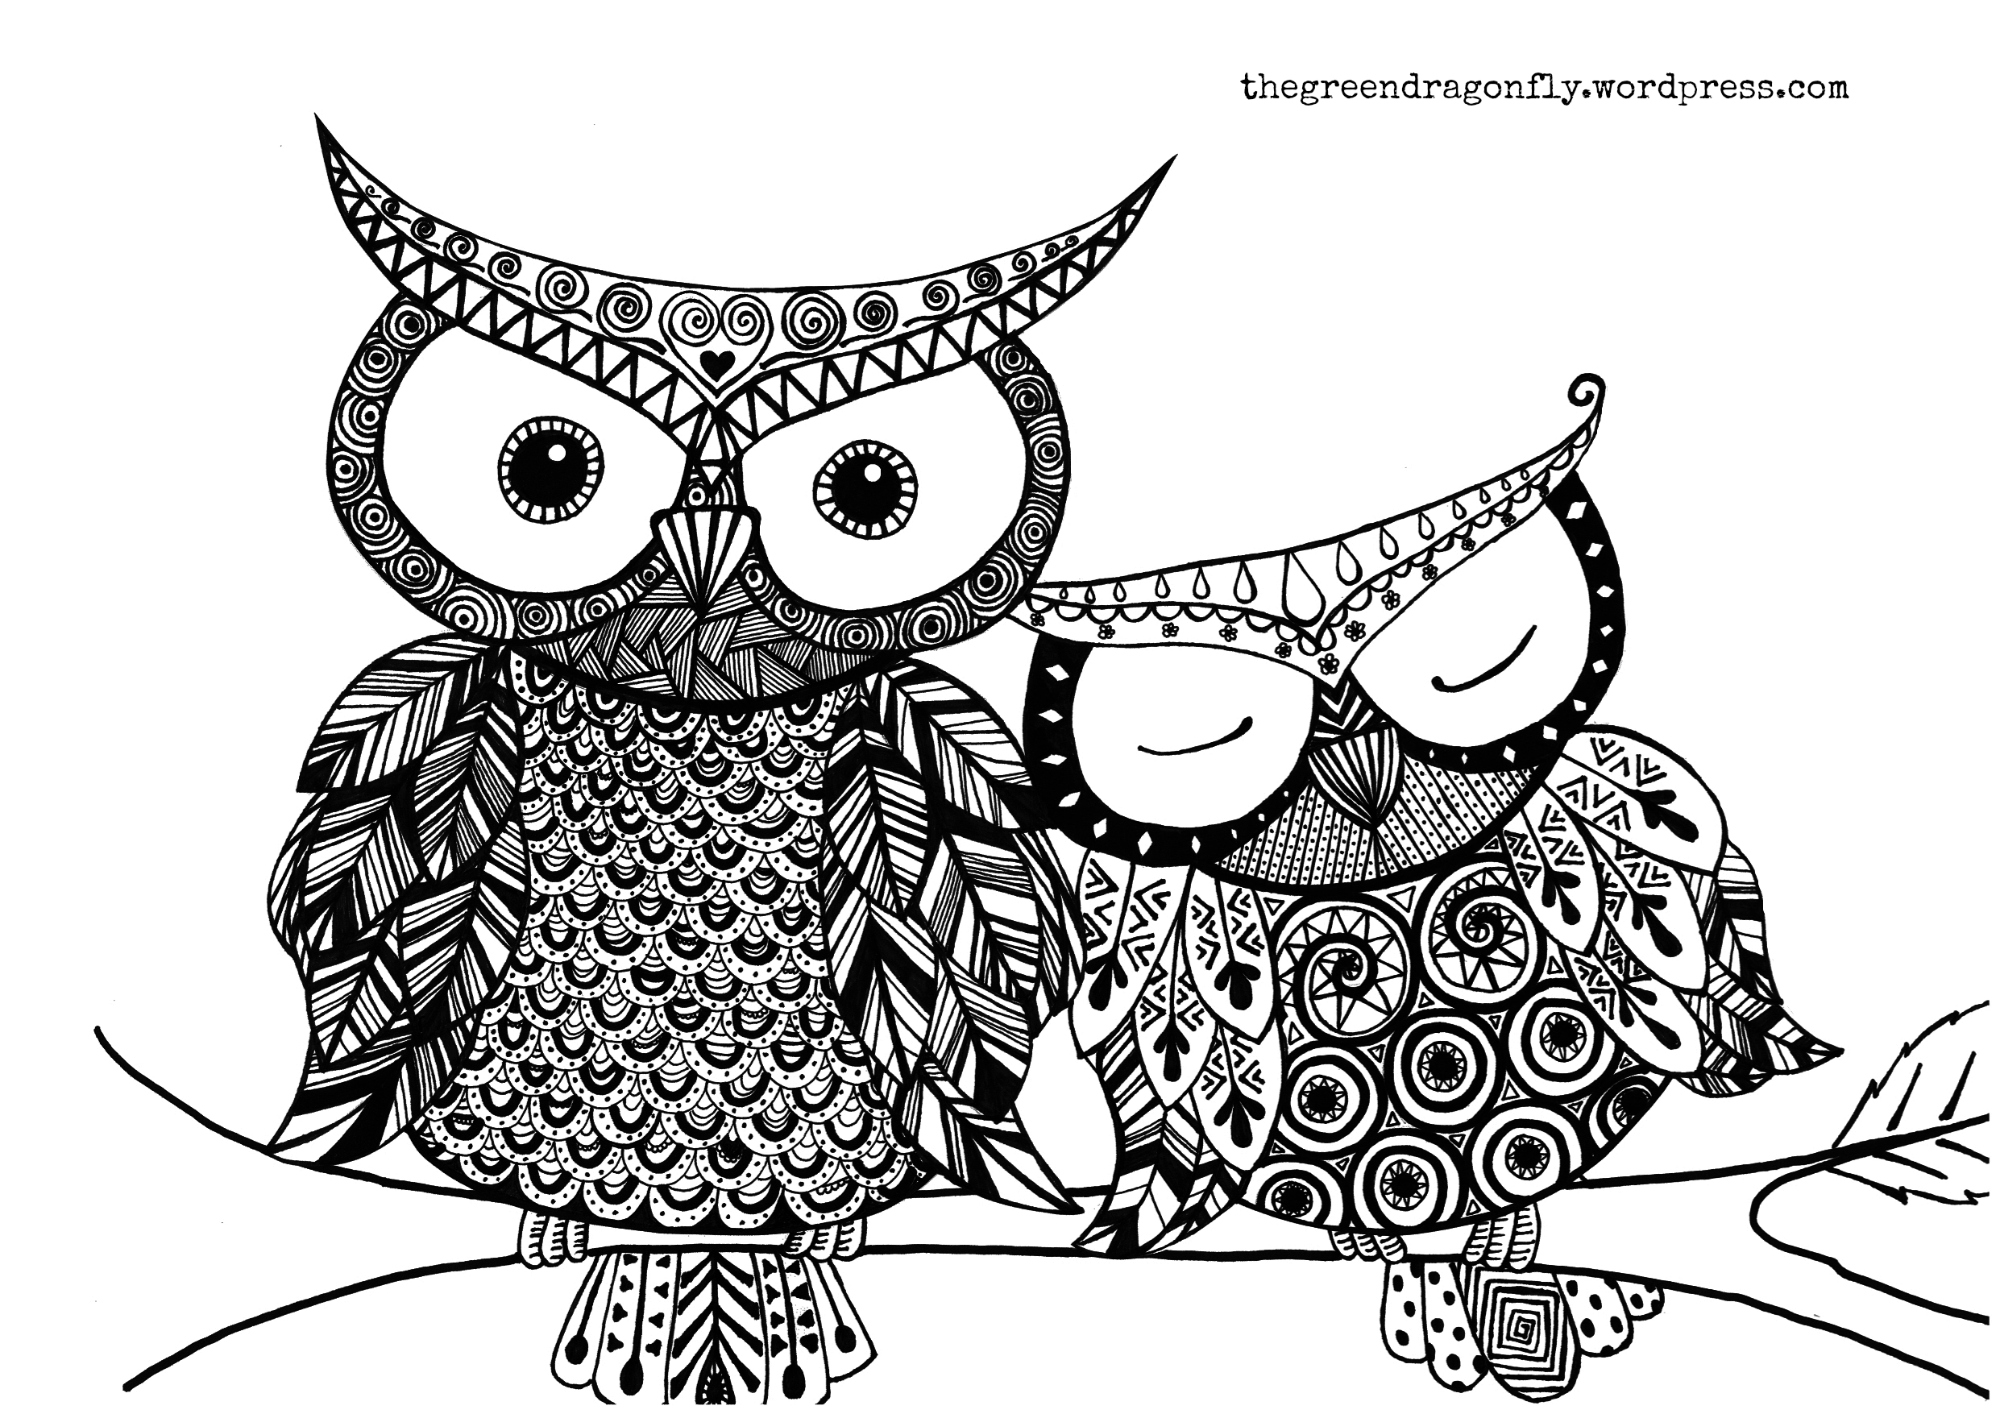 Animal mandala coloring pages to download and print for free | mandala coloring pages printable animals